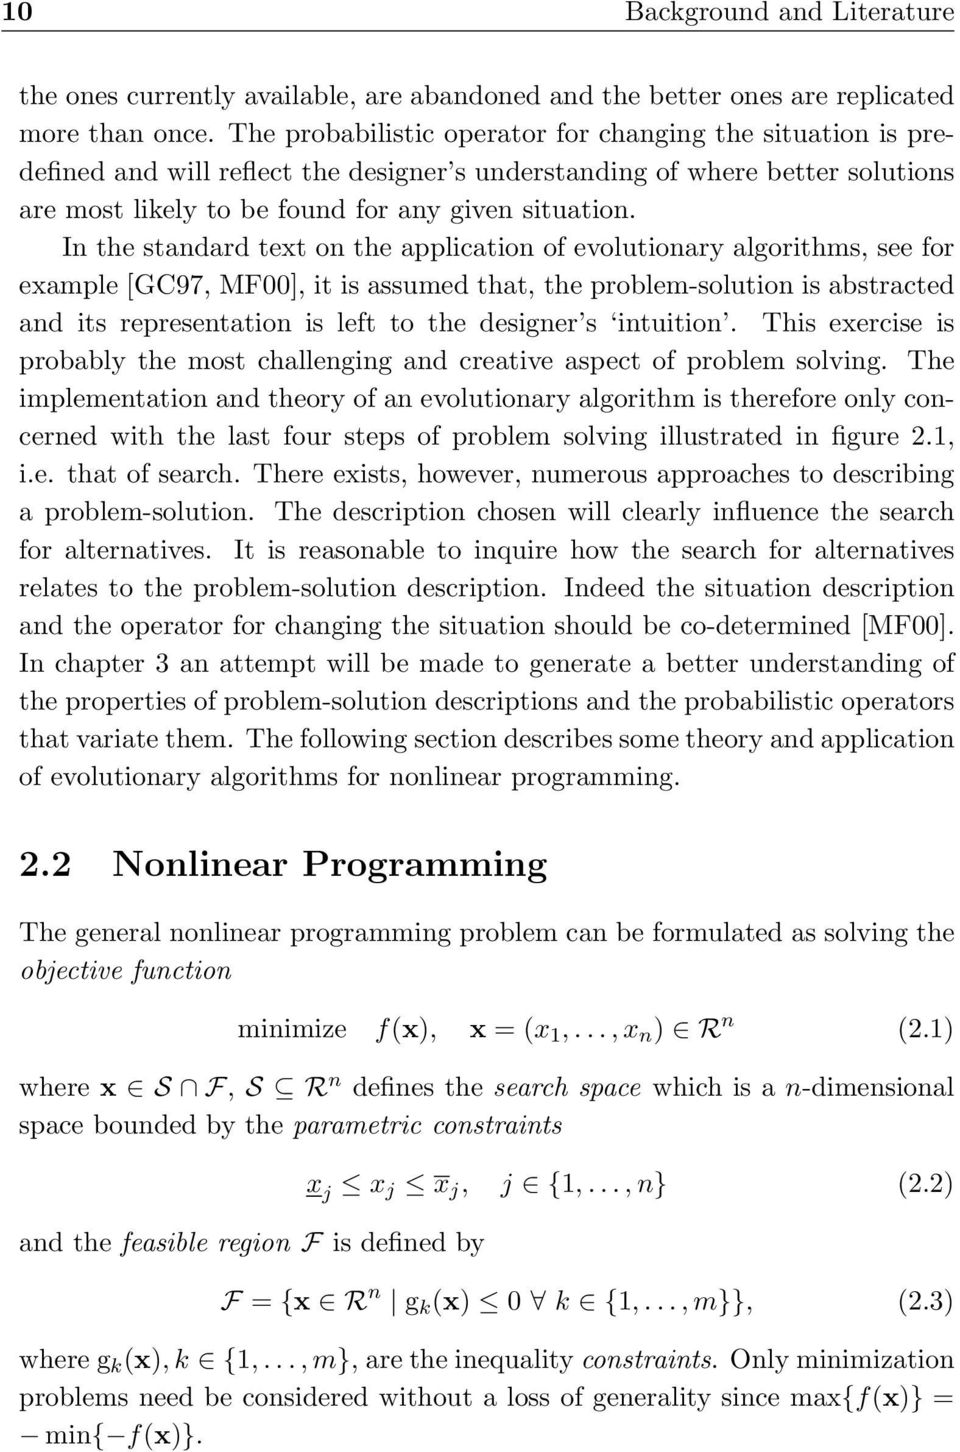 In the standard text on the application of evolutionary algorithms, see for example [GC97, MF00], it is assumed that, the problem-solution is abstracted and its representation is left to the designer